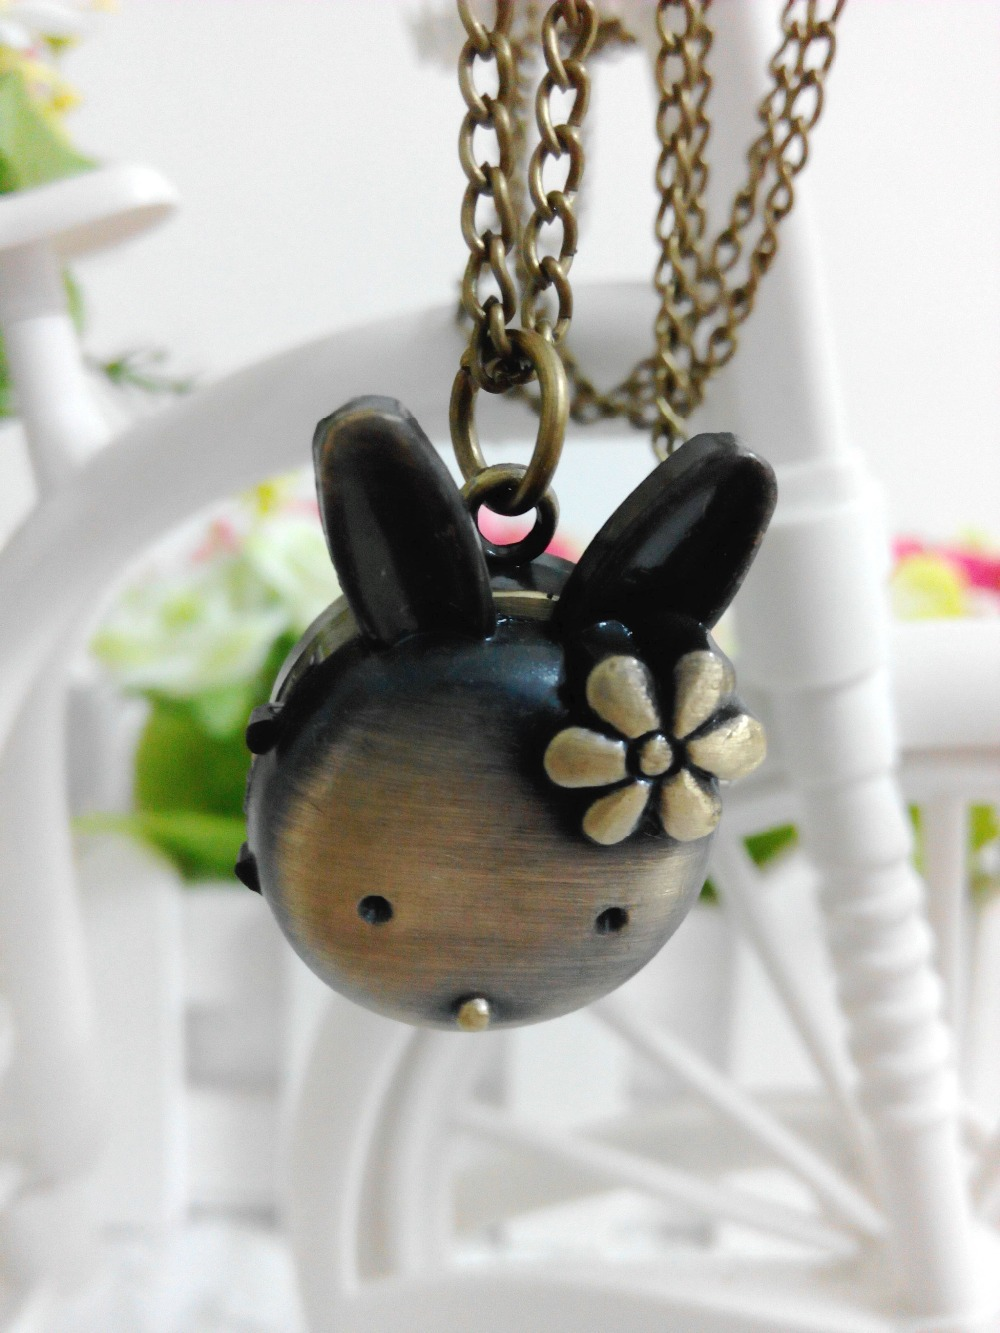 wholesale cartoon rabbit pocket watch necklace,pendant watch necklace,vintage watch necklace,watch necklace ball(China (Mainland))